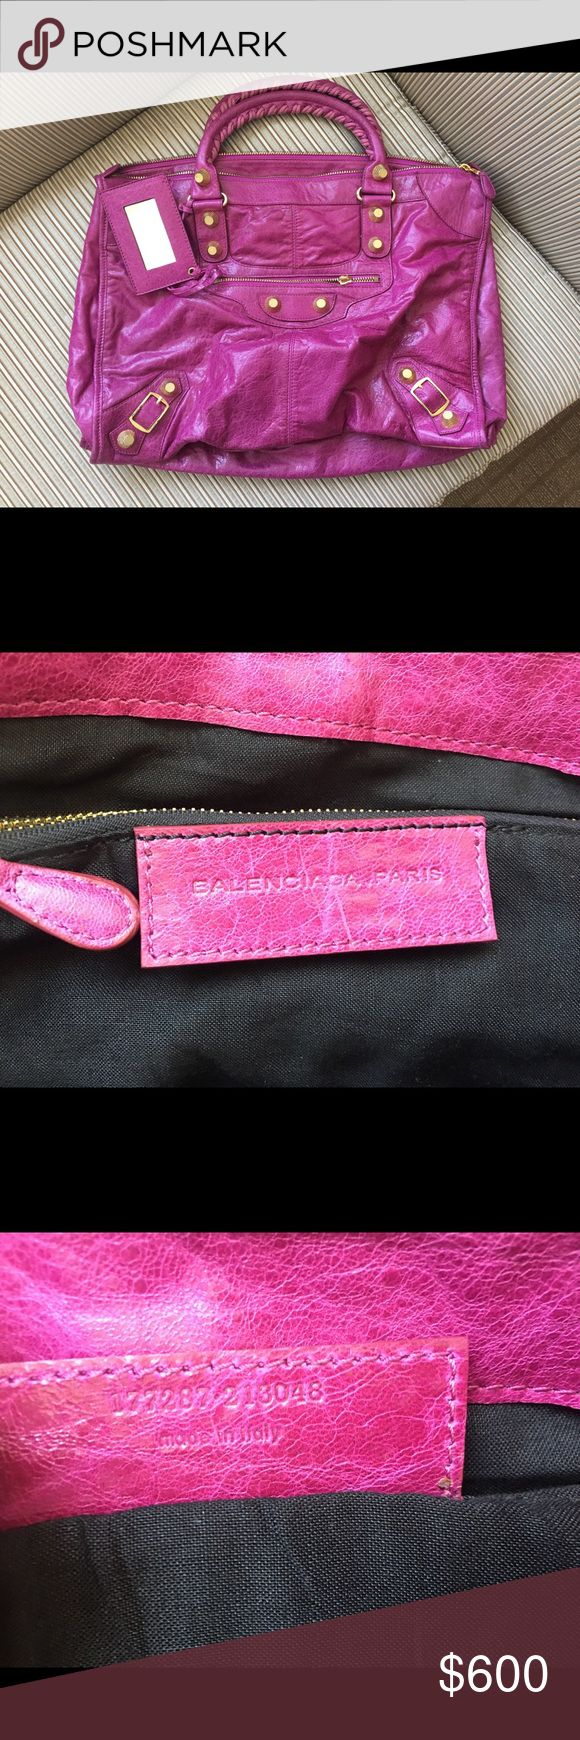 Balenciaga Work Magenta GGH Used a few times. In overall great condition. Comes with mirror, no dust bags. Purchased from consignment store in Newport Beach. Front zipper pull missing! Price adjusted accordingly. Please send me any reasonable offers. Balenciaga Bags Shoulder Bags